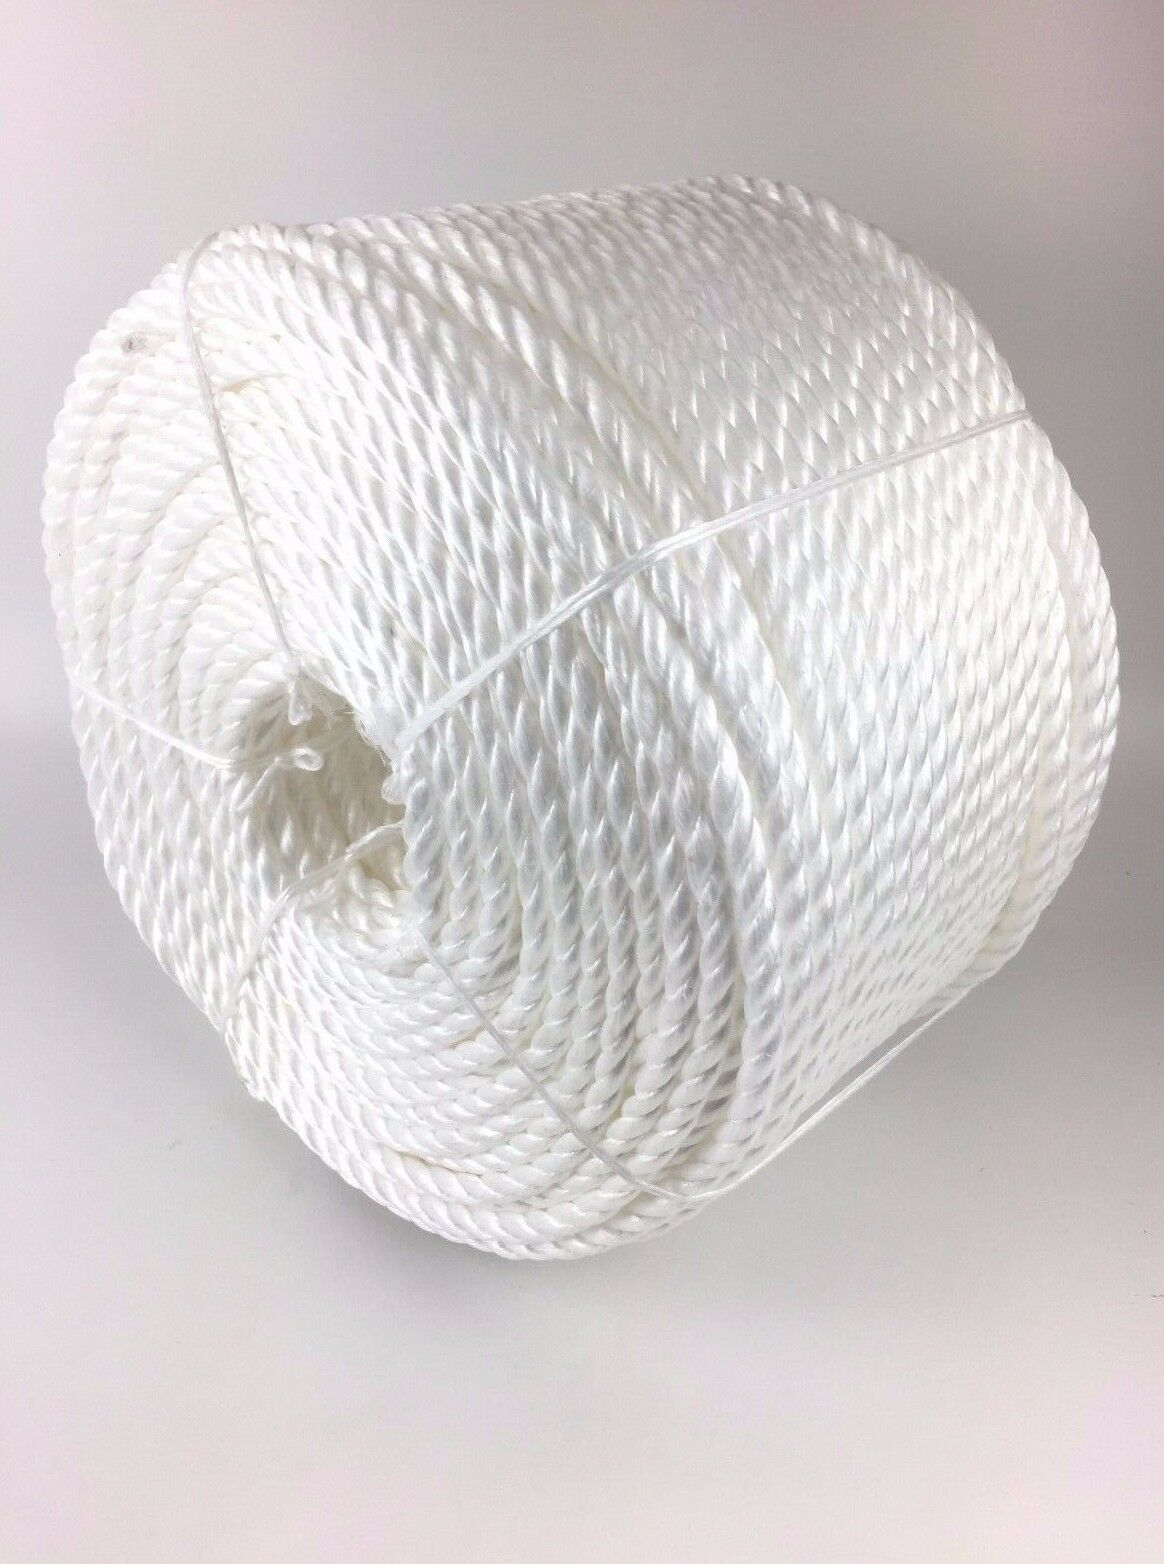 6mm White Polypropylene Rope x 500m Coil, White Poly Rope Coils, White Polyrope